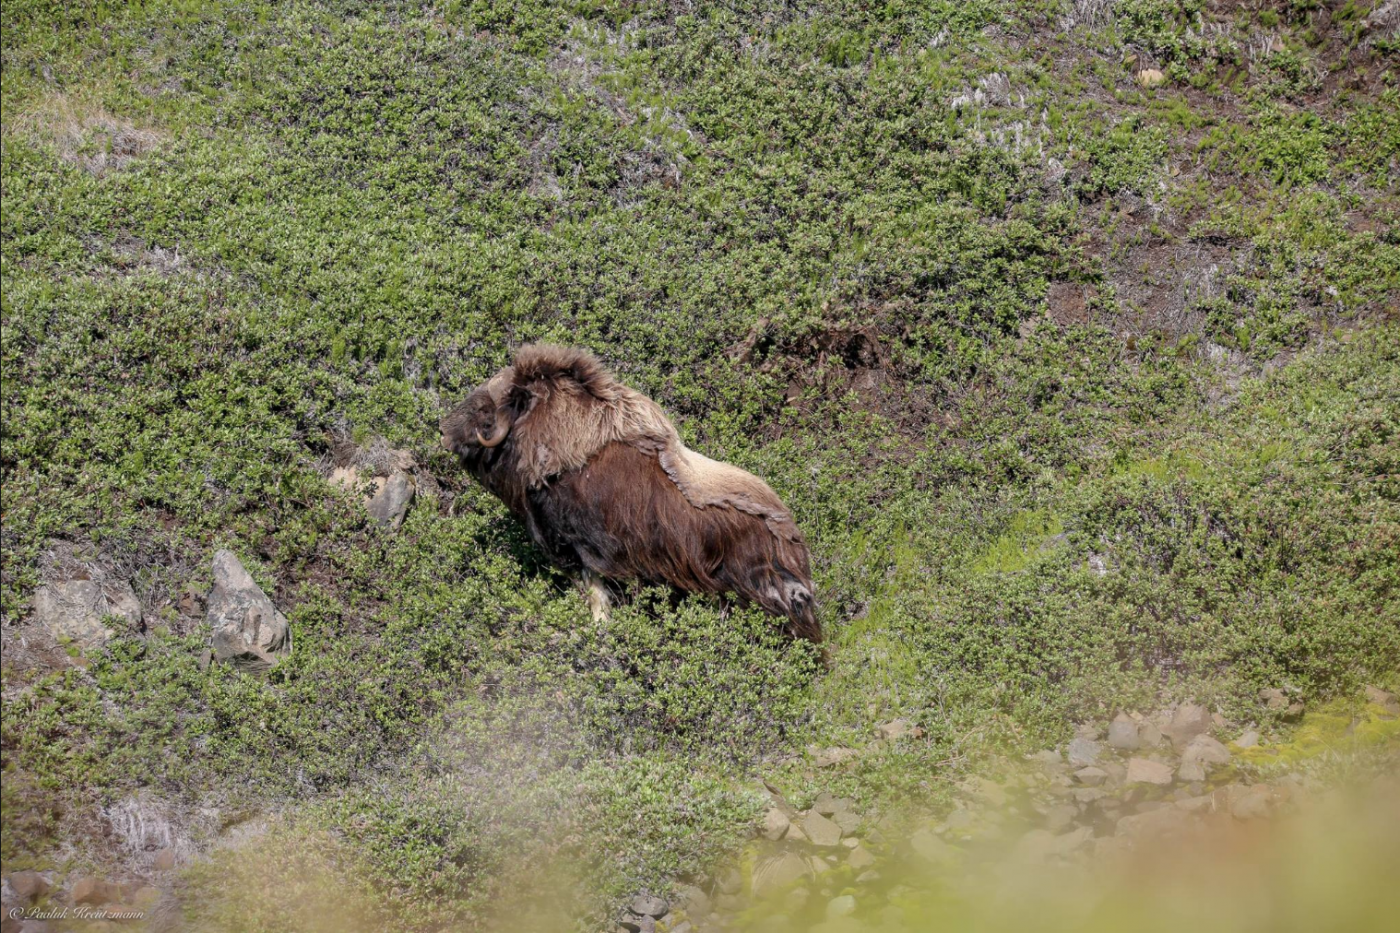 Muskox walking on a vegetated mountain. Photo by Uummannaq Seasafaris ApS, Visit Greenland